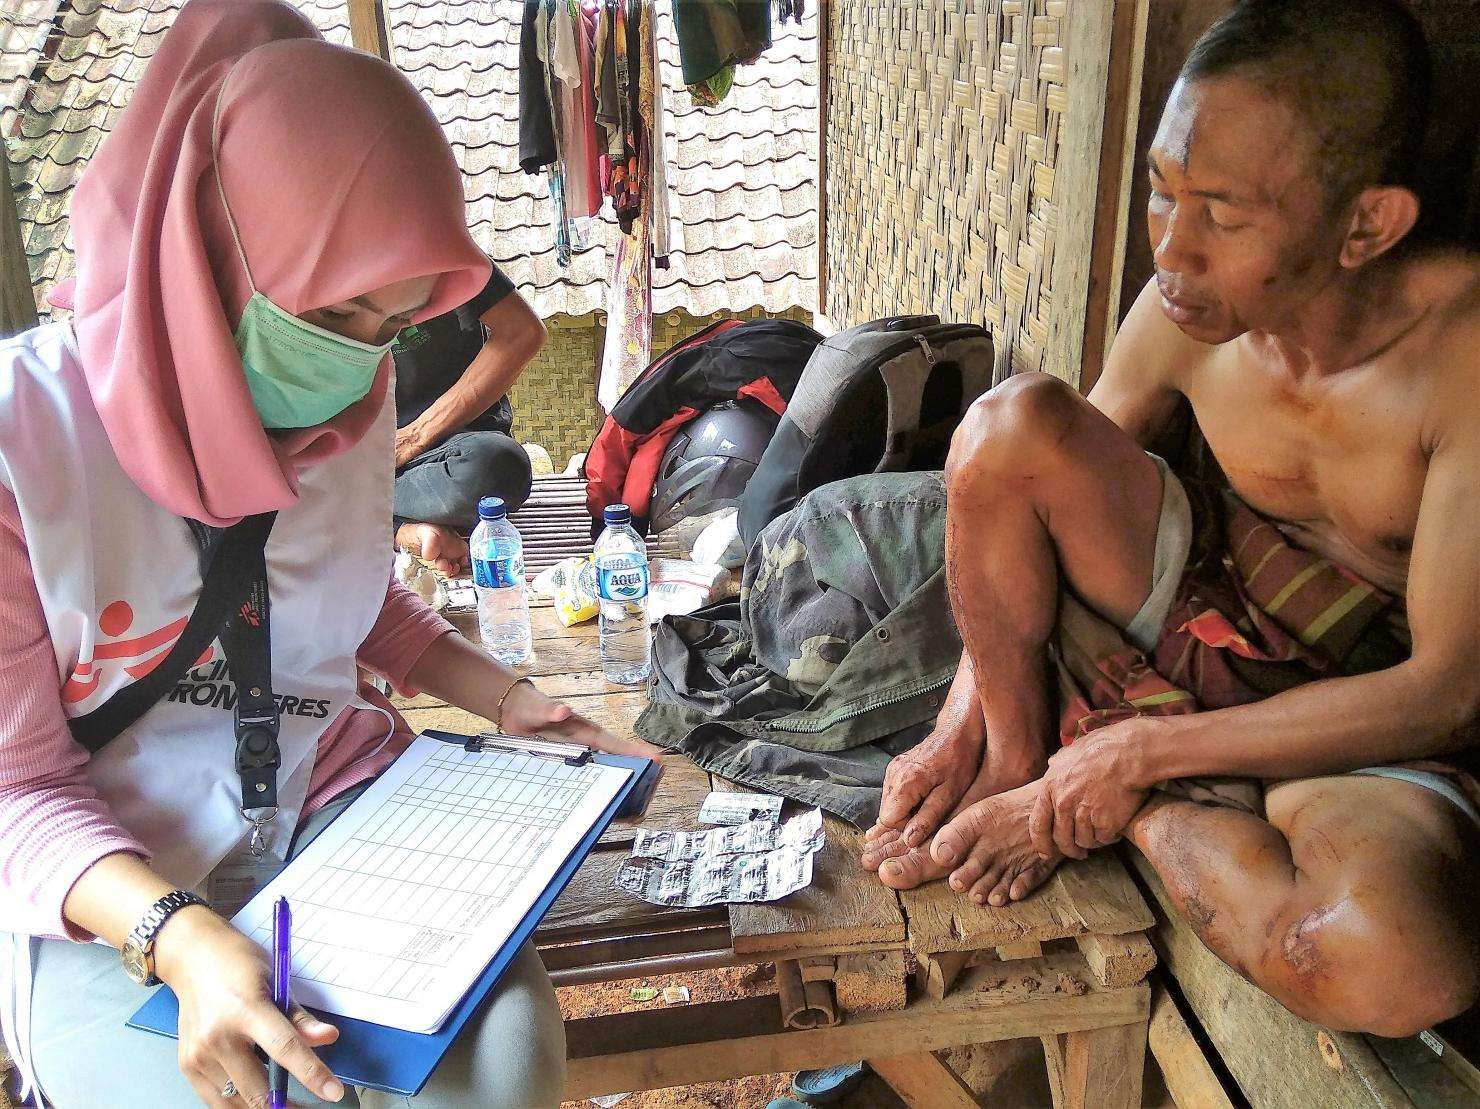 Dina Afiryanti, an MSF midwife, is interviewing one of the community members of Carita Sub district, in Pandeglang.